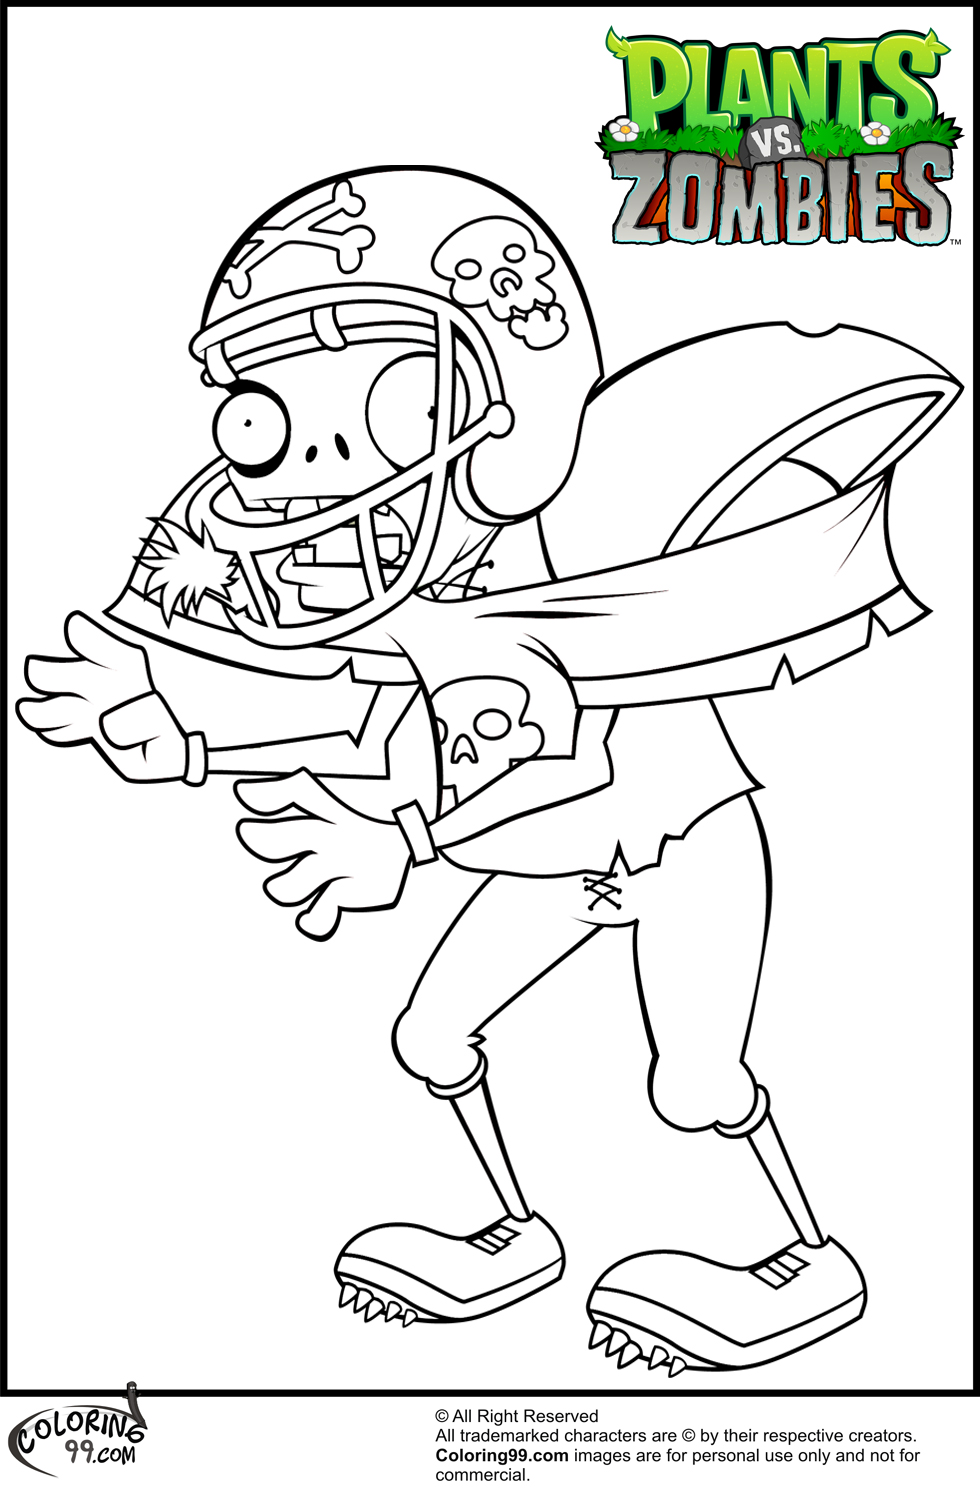 Plants vs Zombies Coloring Pages | coloring.rocks!